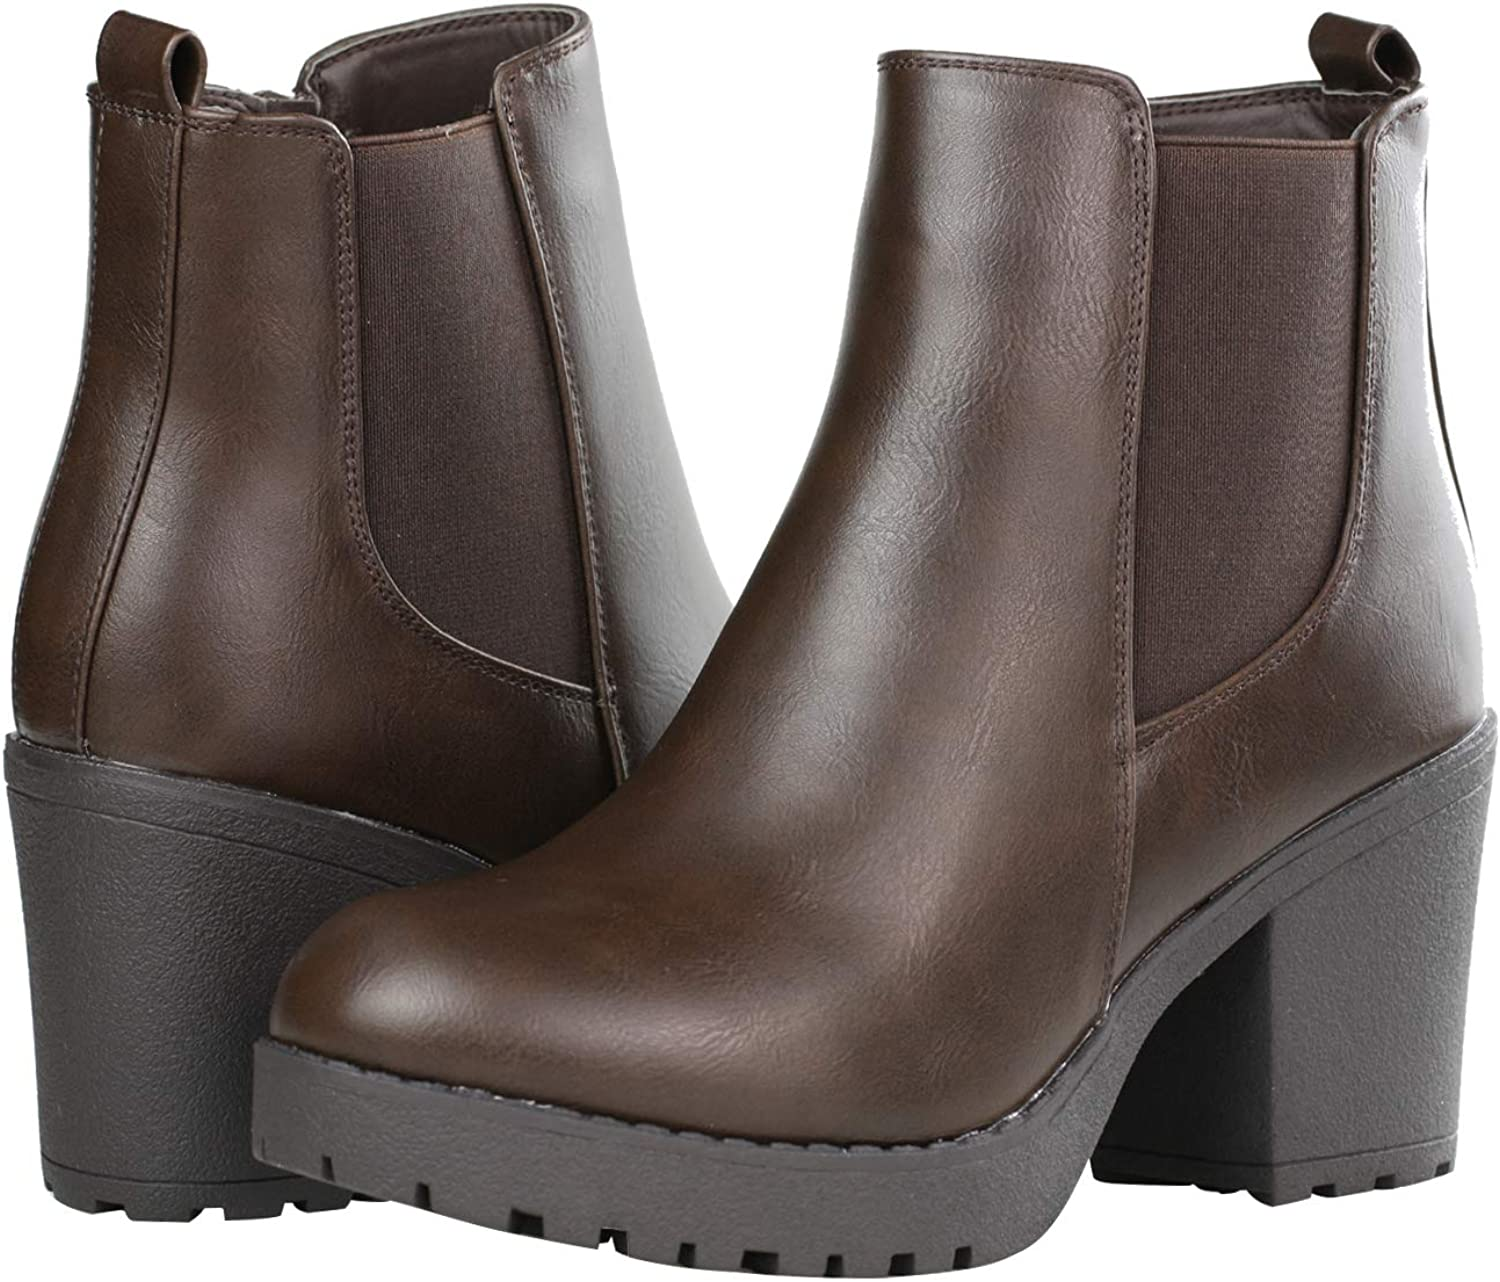 Details about  /Womens Ladies Zip Up Buckle Ankle Boots High Block Heels Chunky Round Toe Shoes